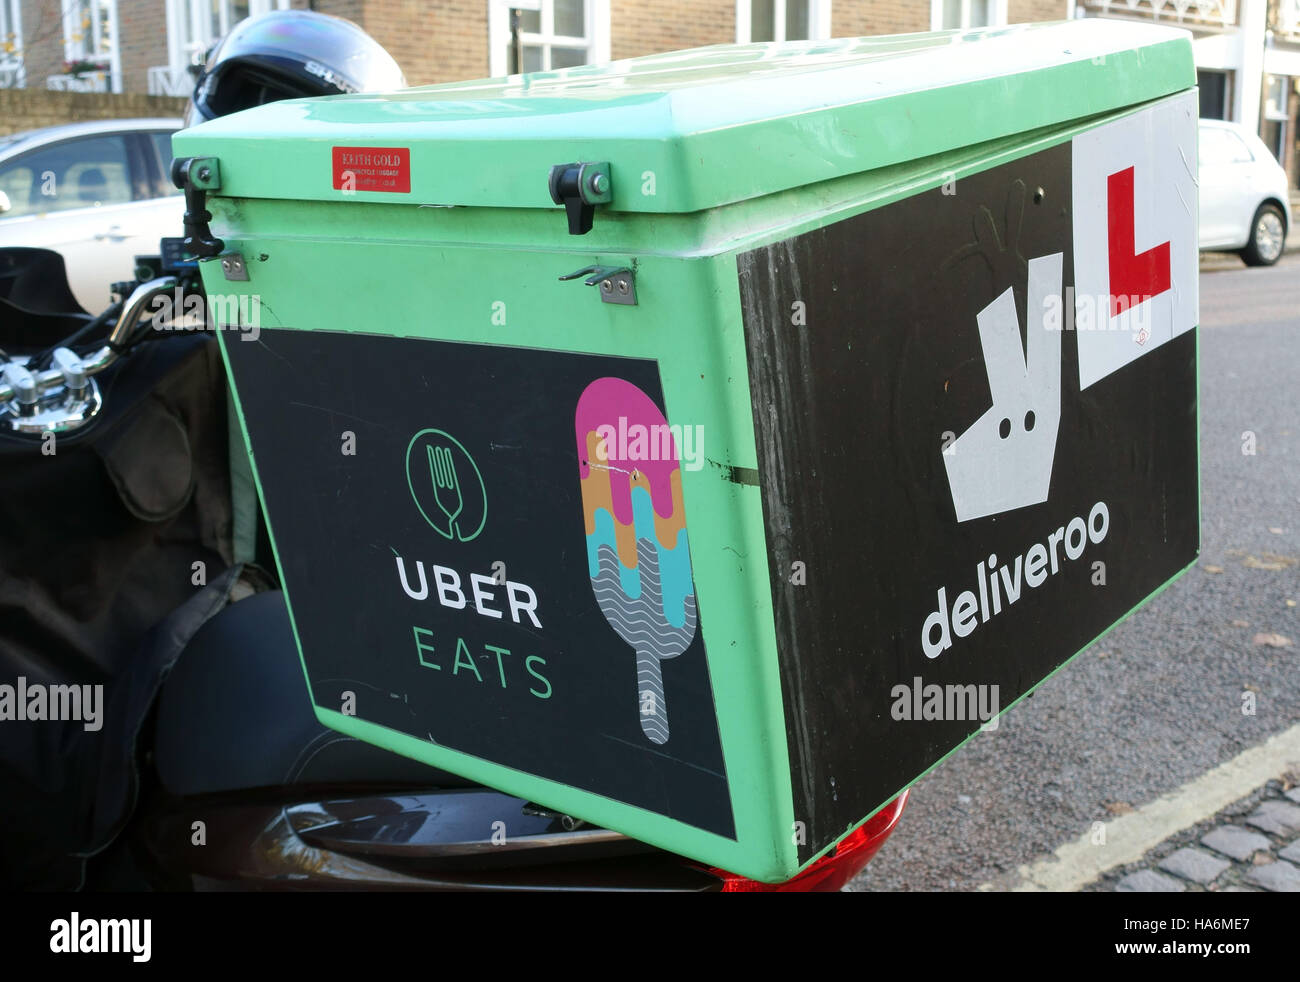 Food delivery driver working for both Uber Eats and Deliveroo